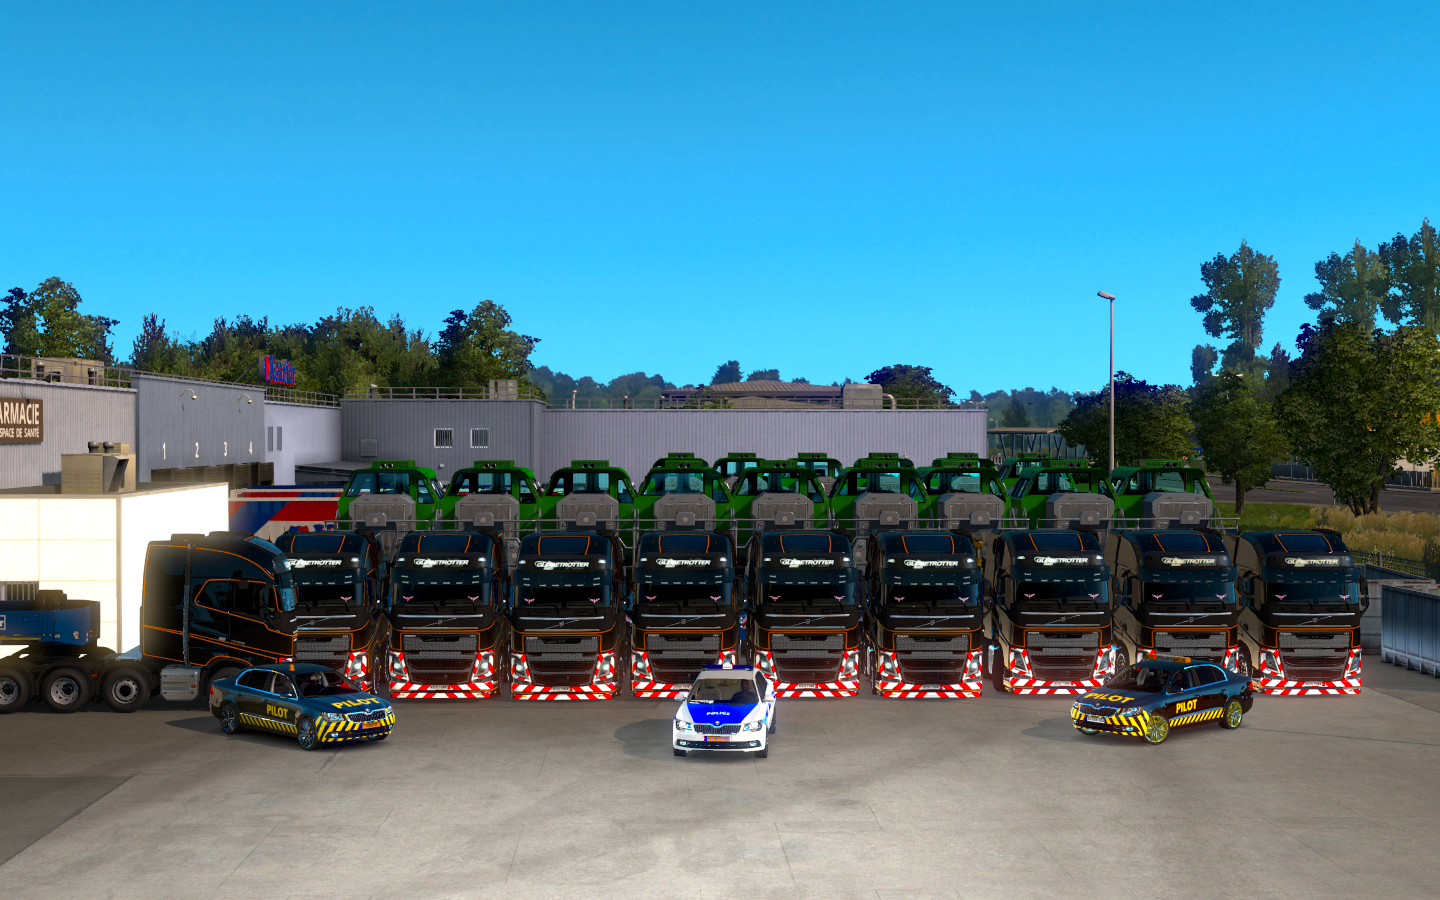 ets2_20190302_210146_00.png